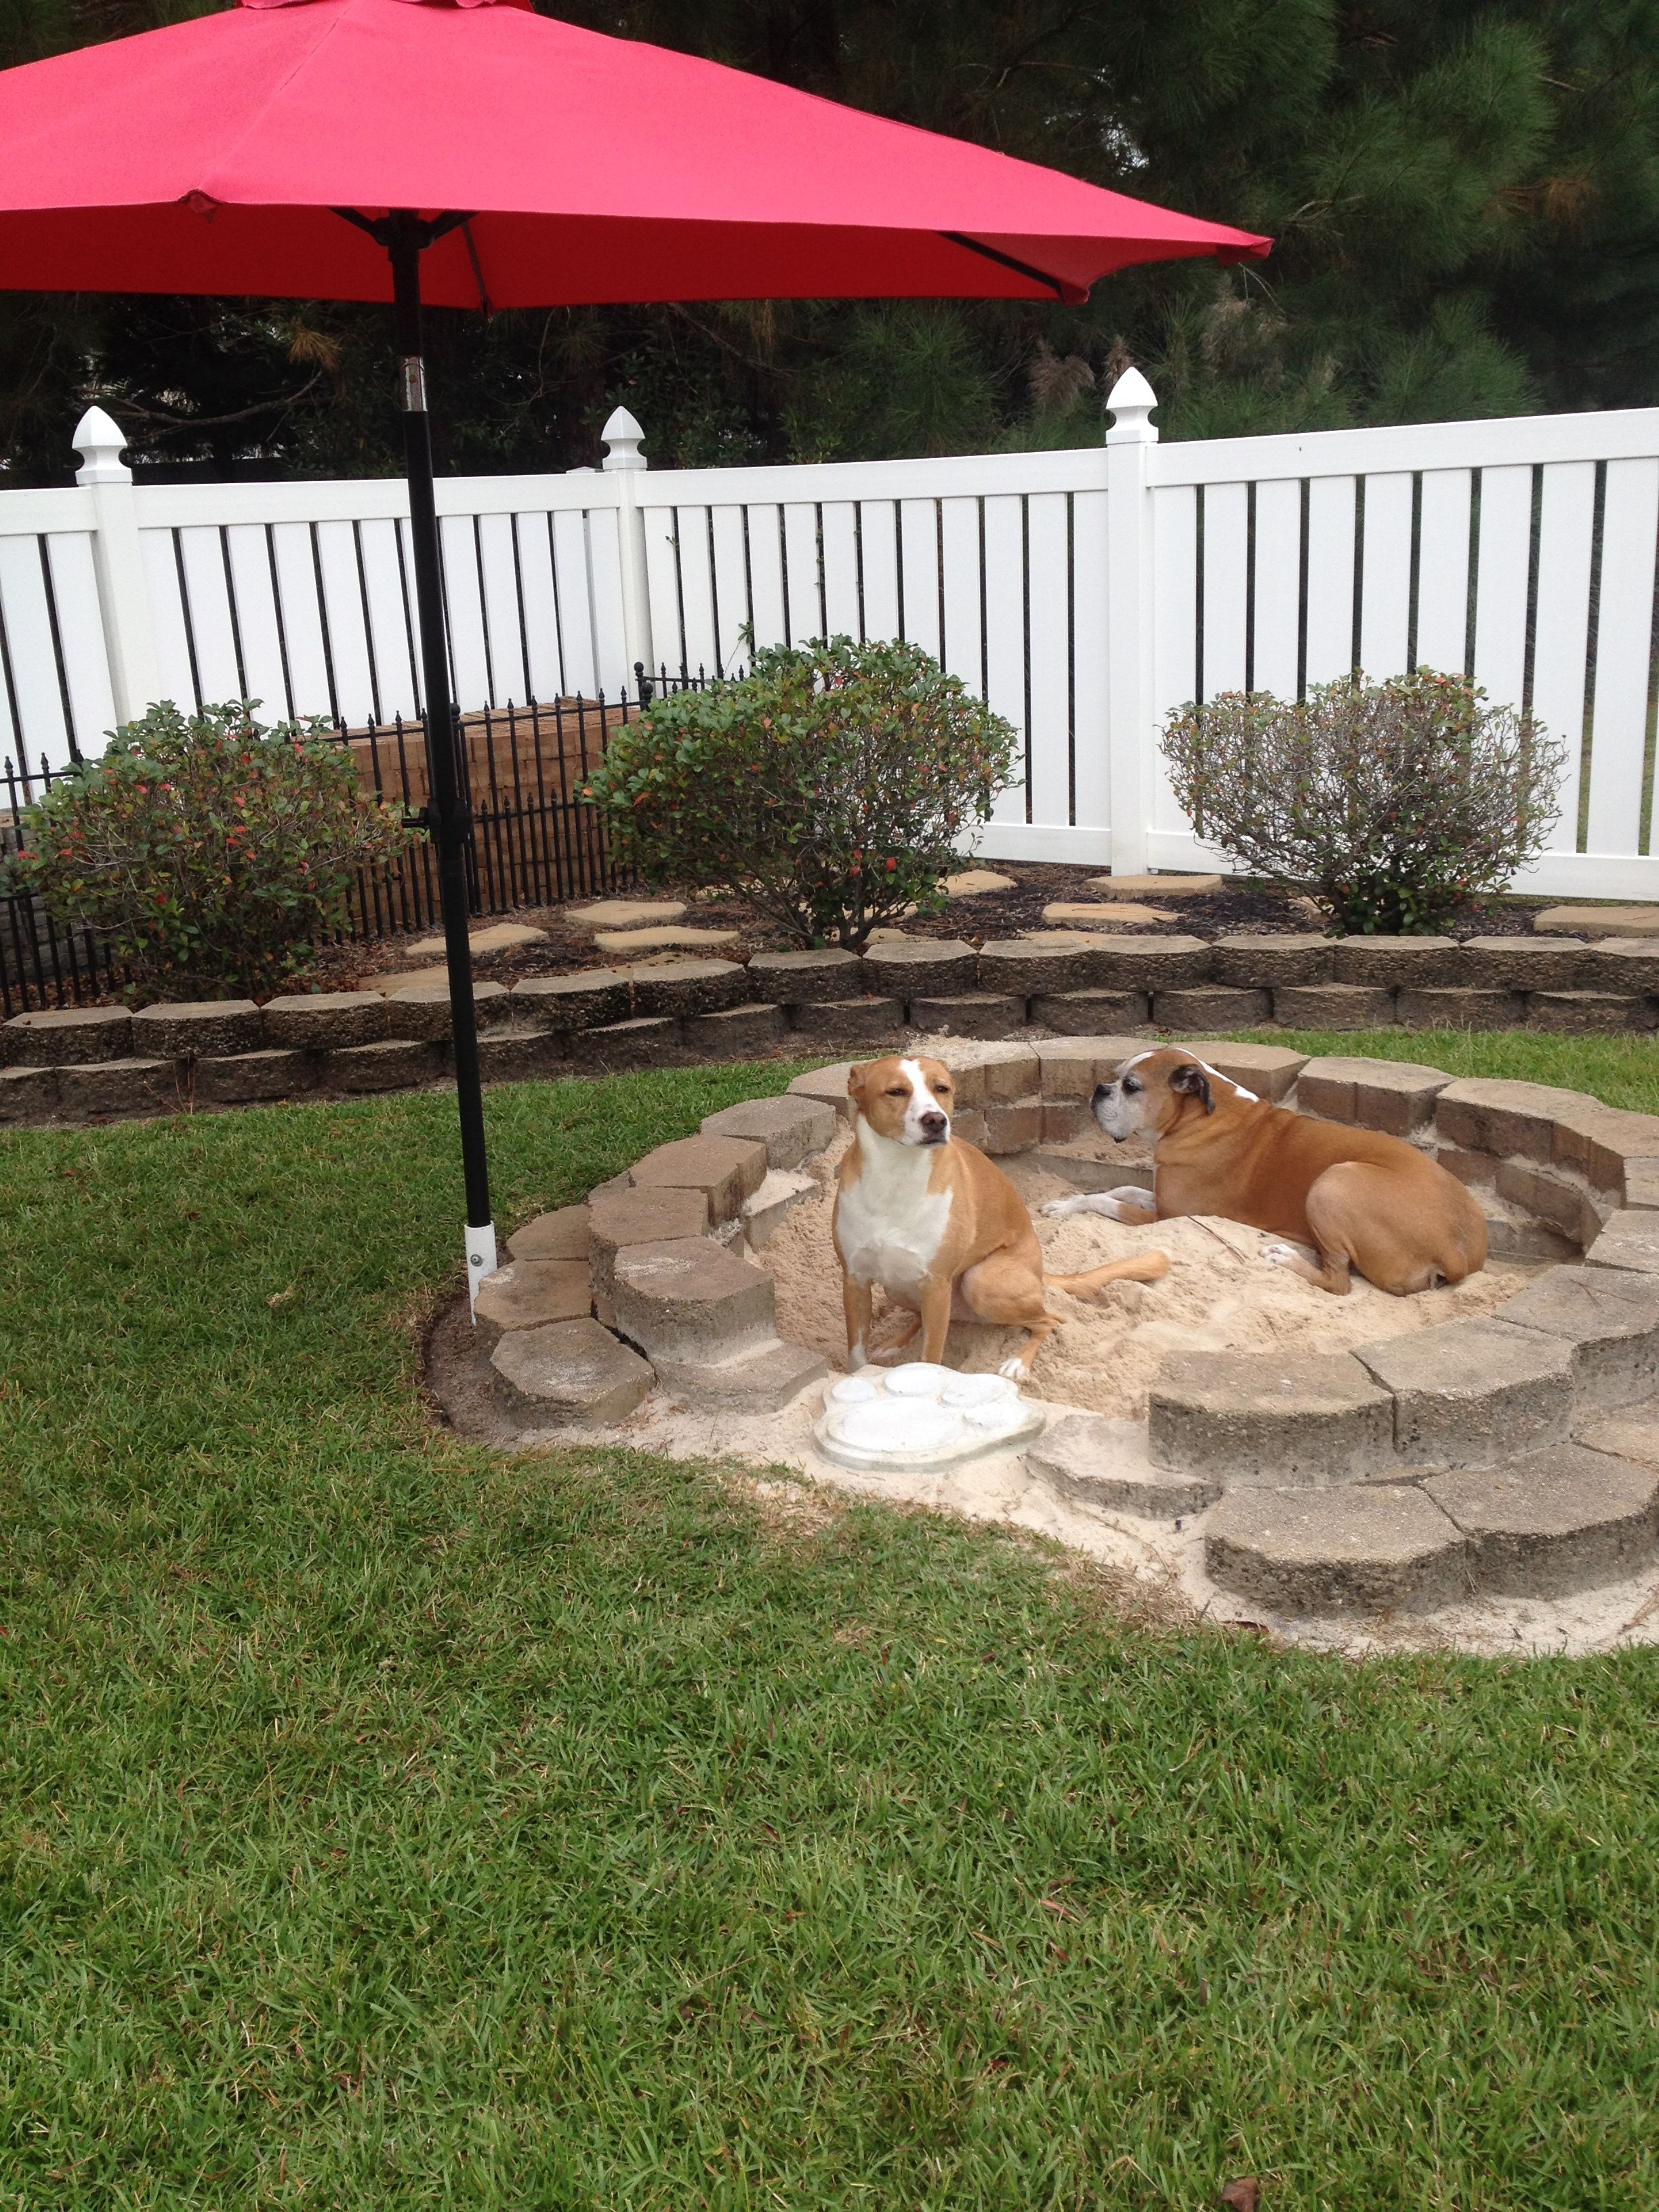 Diy Doggy Sandbox For Those Who Dig It Just Dig A Hole And Line It With Landscape Pavers And Cinderblocks Dog Friendly Backyard Dog Backyard Dog Playground